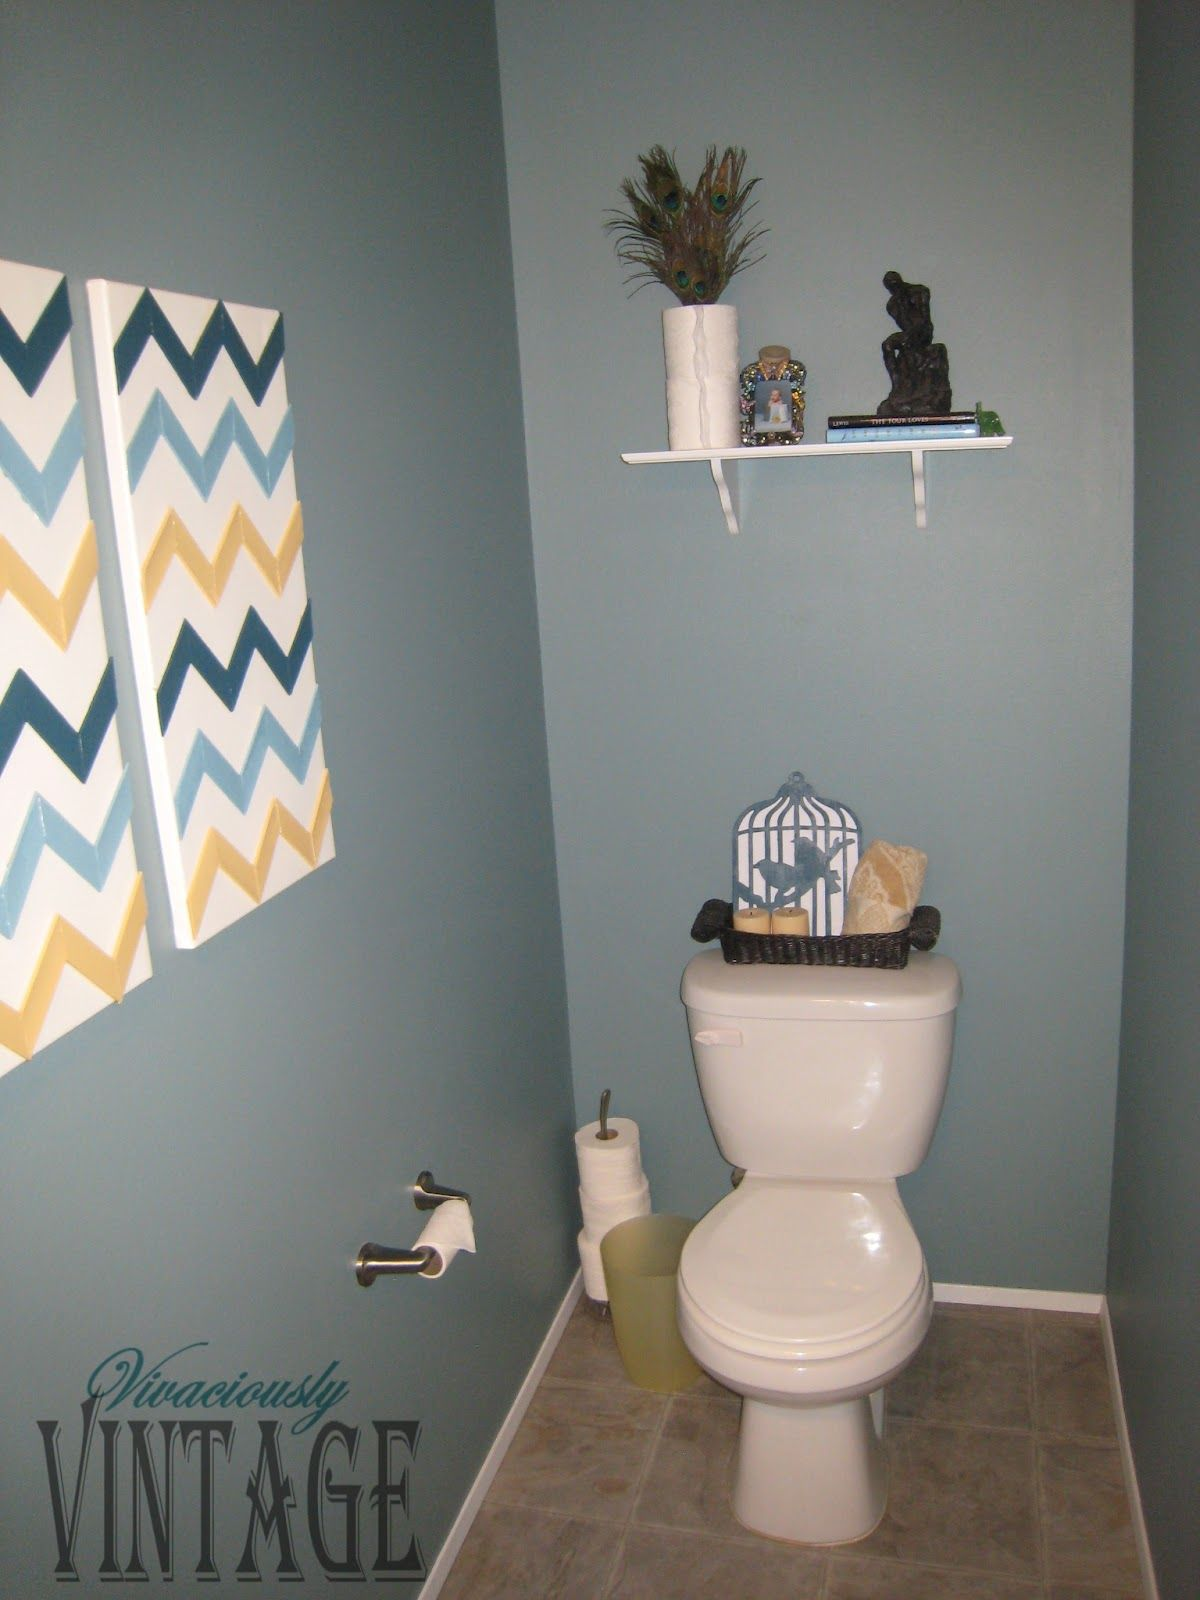 Downstairs Bathroom Decorating Ideas downstairs toilet decorating ideas: vivaciously vintage half